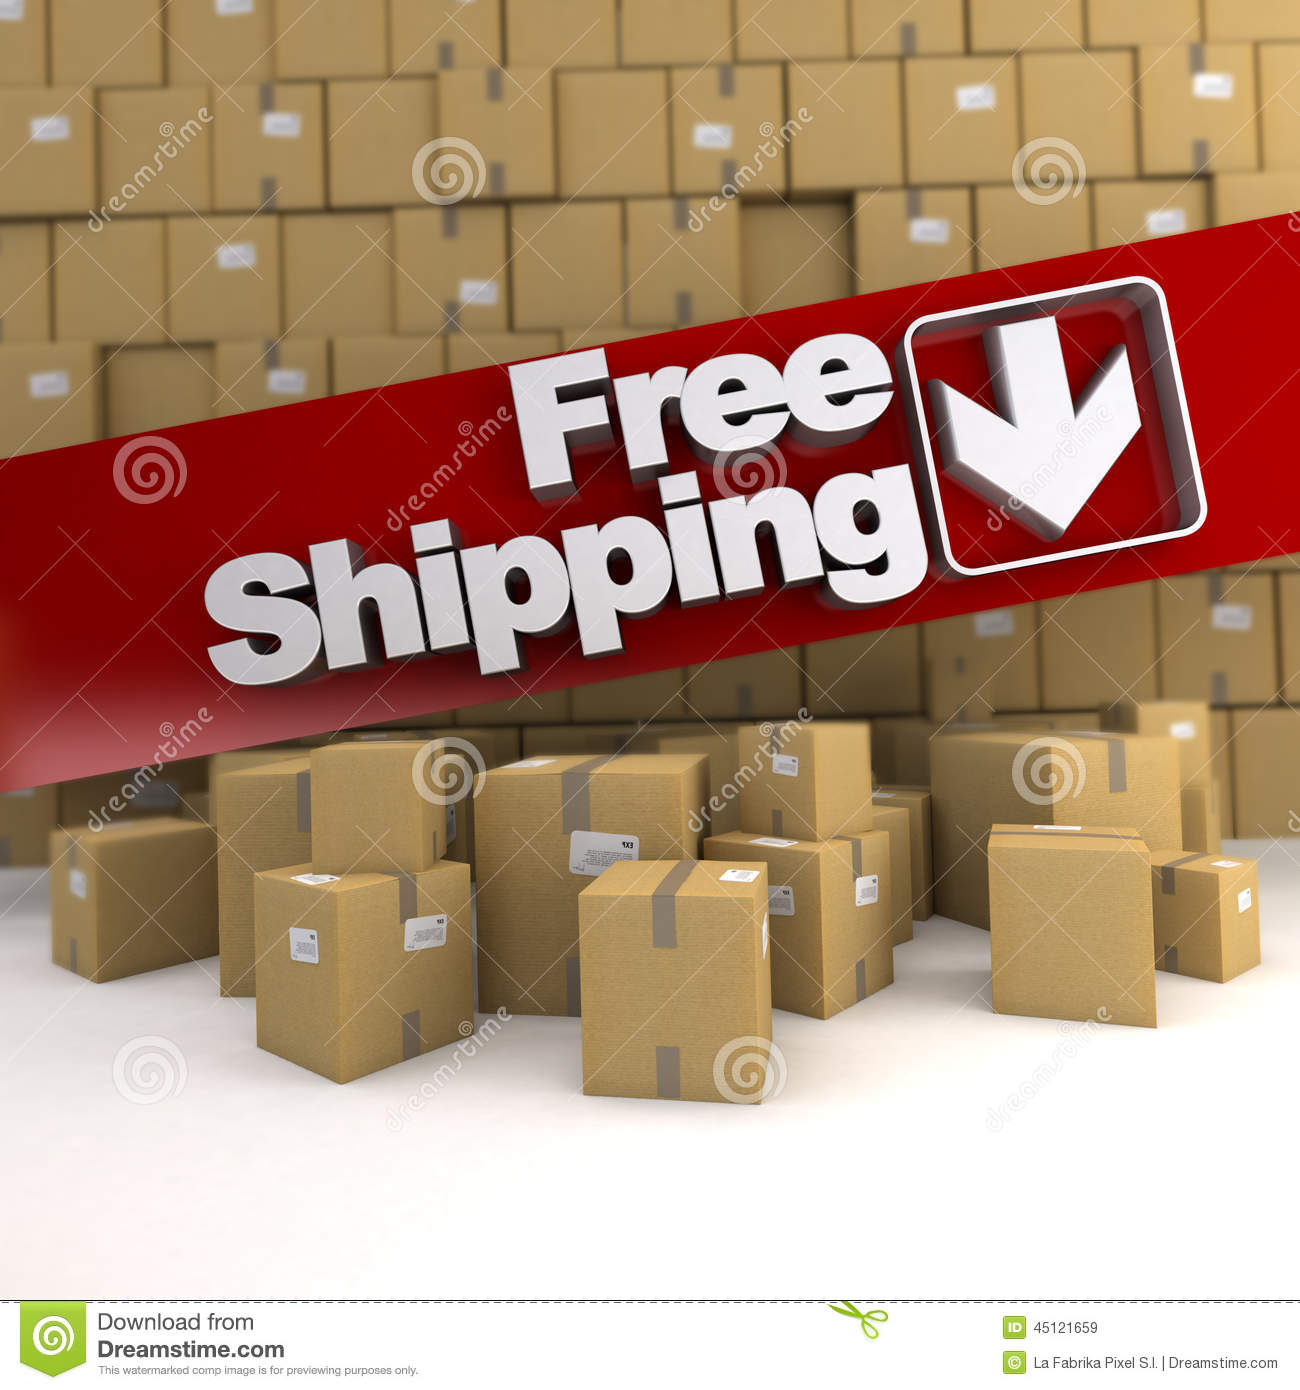 Download Free shipping, box wall stock illustration. Illustration of shop - 45121659